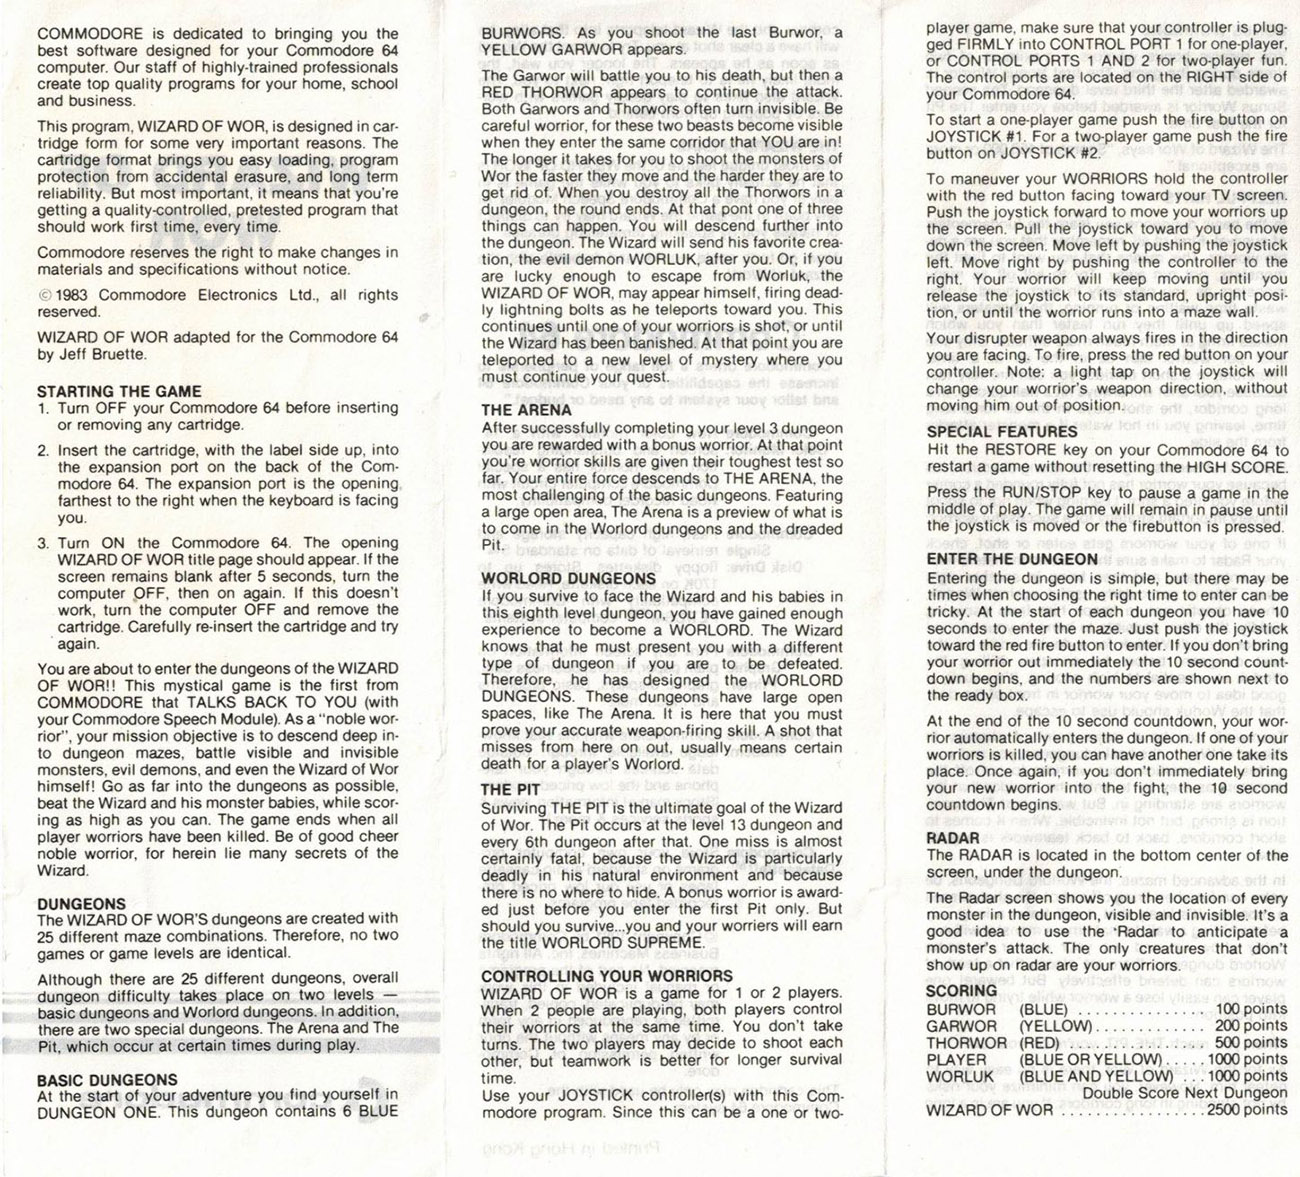 Wizard of Wor manual back